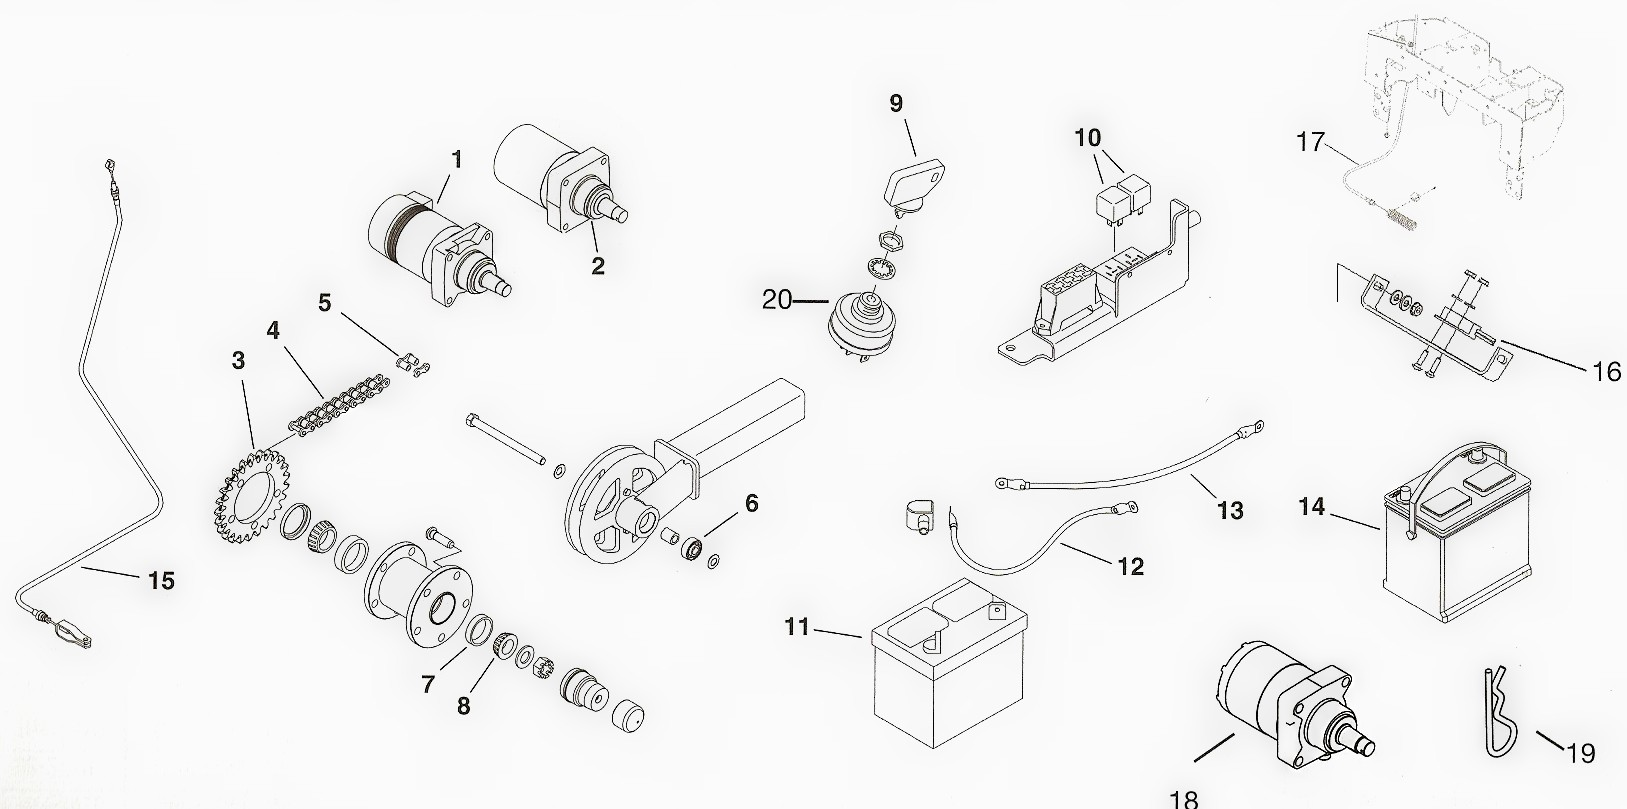 Toro Dingo Engine Parts Diagram Toro Lawn Mower Parts